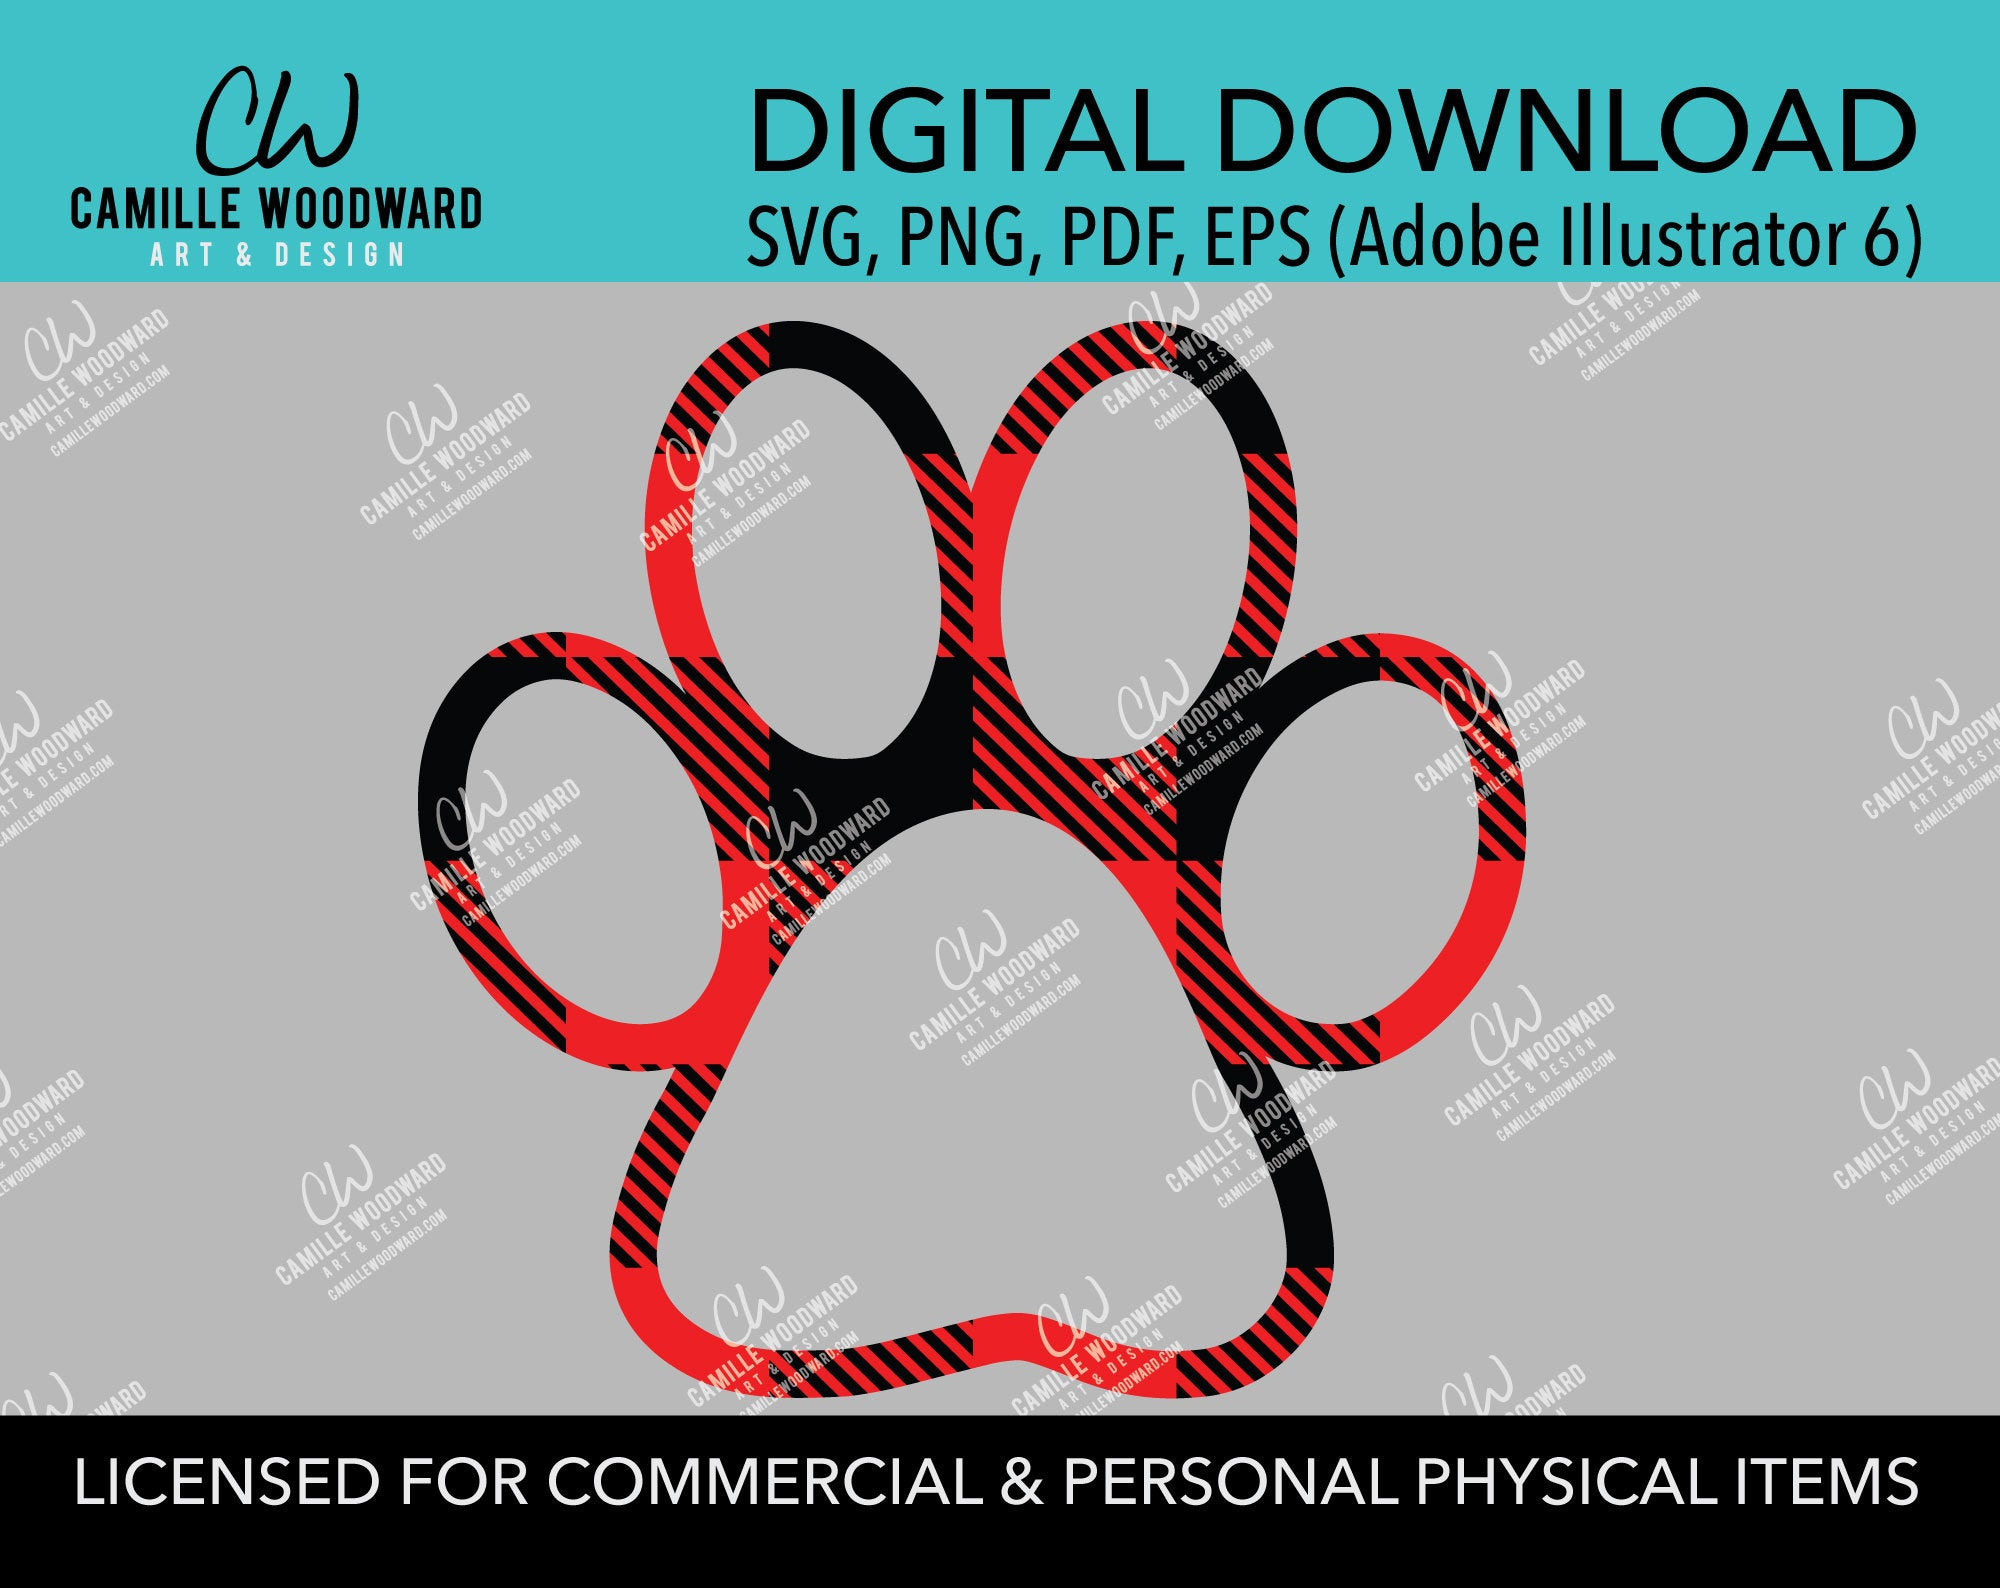 Buffalo Plaid Paw Print Red Black Transparent Pads, SVG, EPS, PNG - Sublimation Digital Download